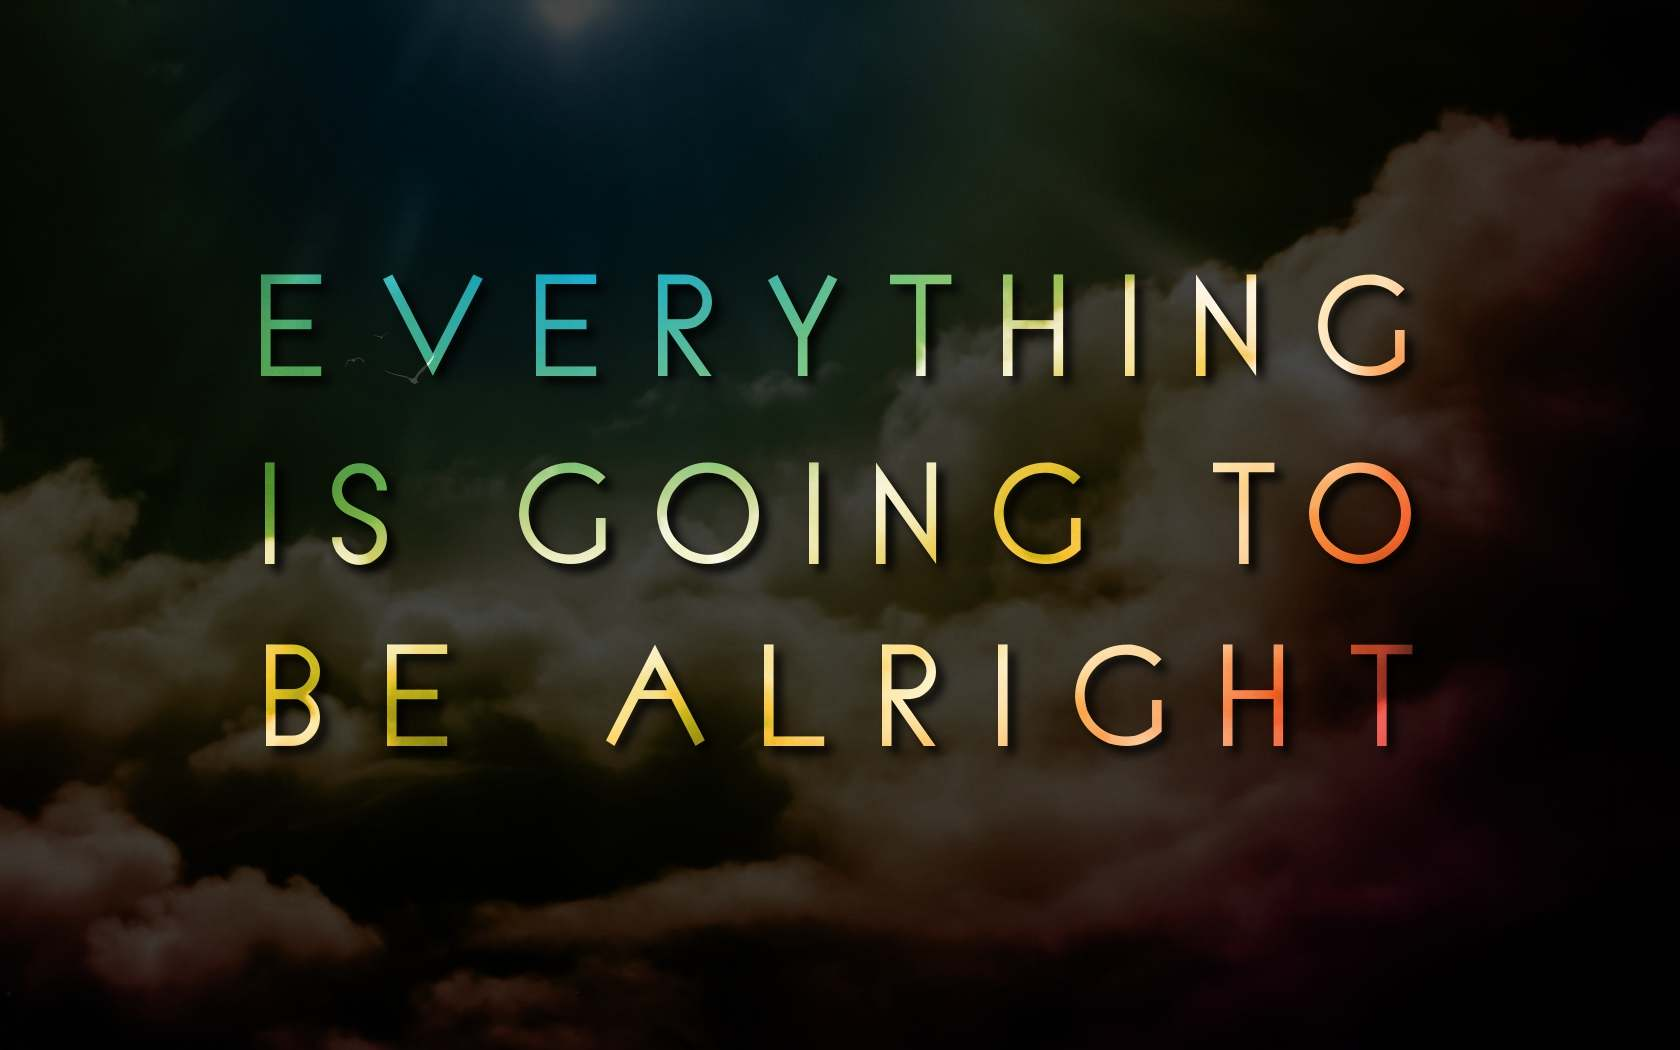 Inspirational Quote Wallpaper For Surface Pro 4 Motivational Wallpaper And Background Image 1680x1050